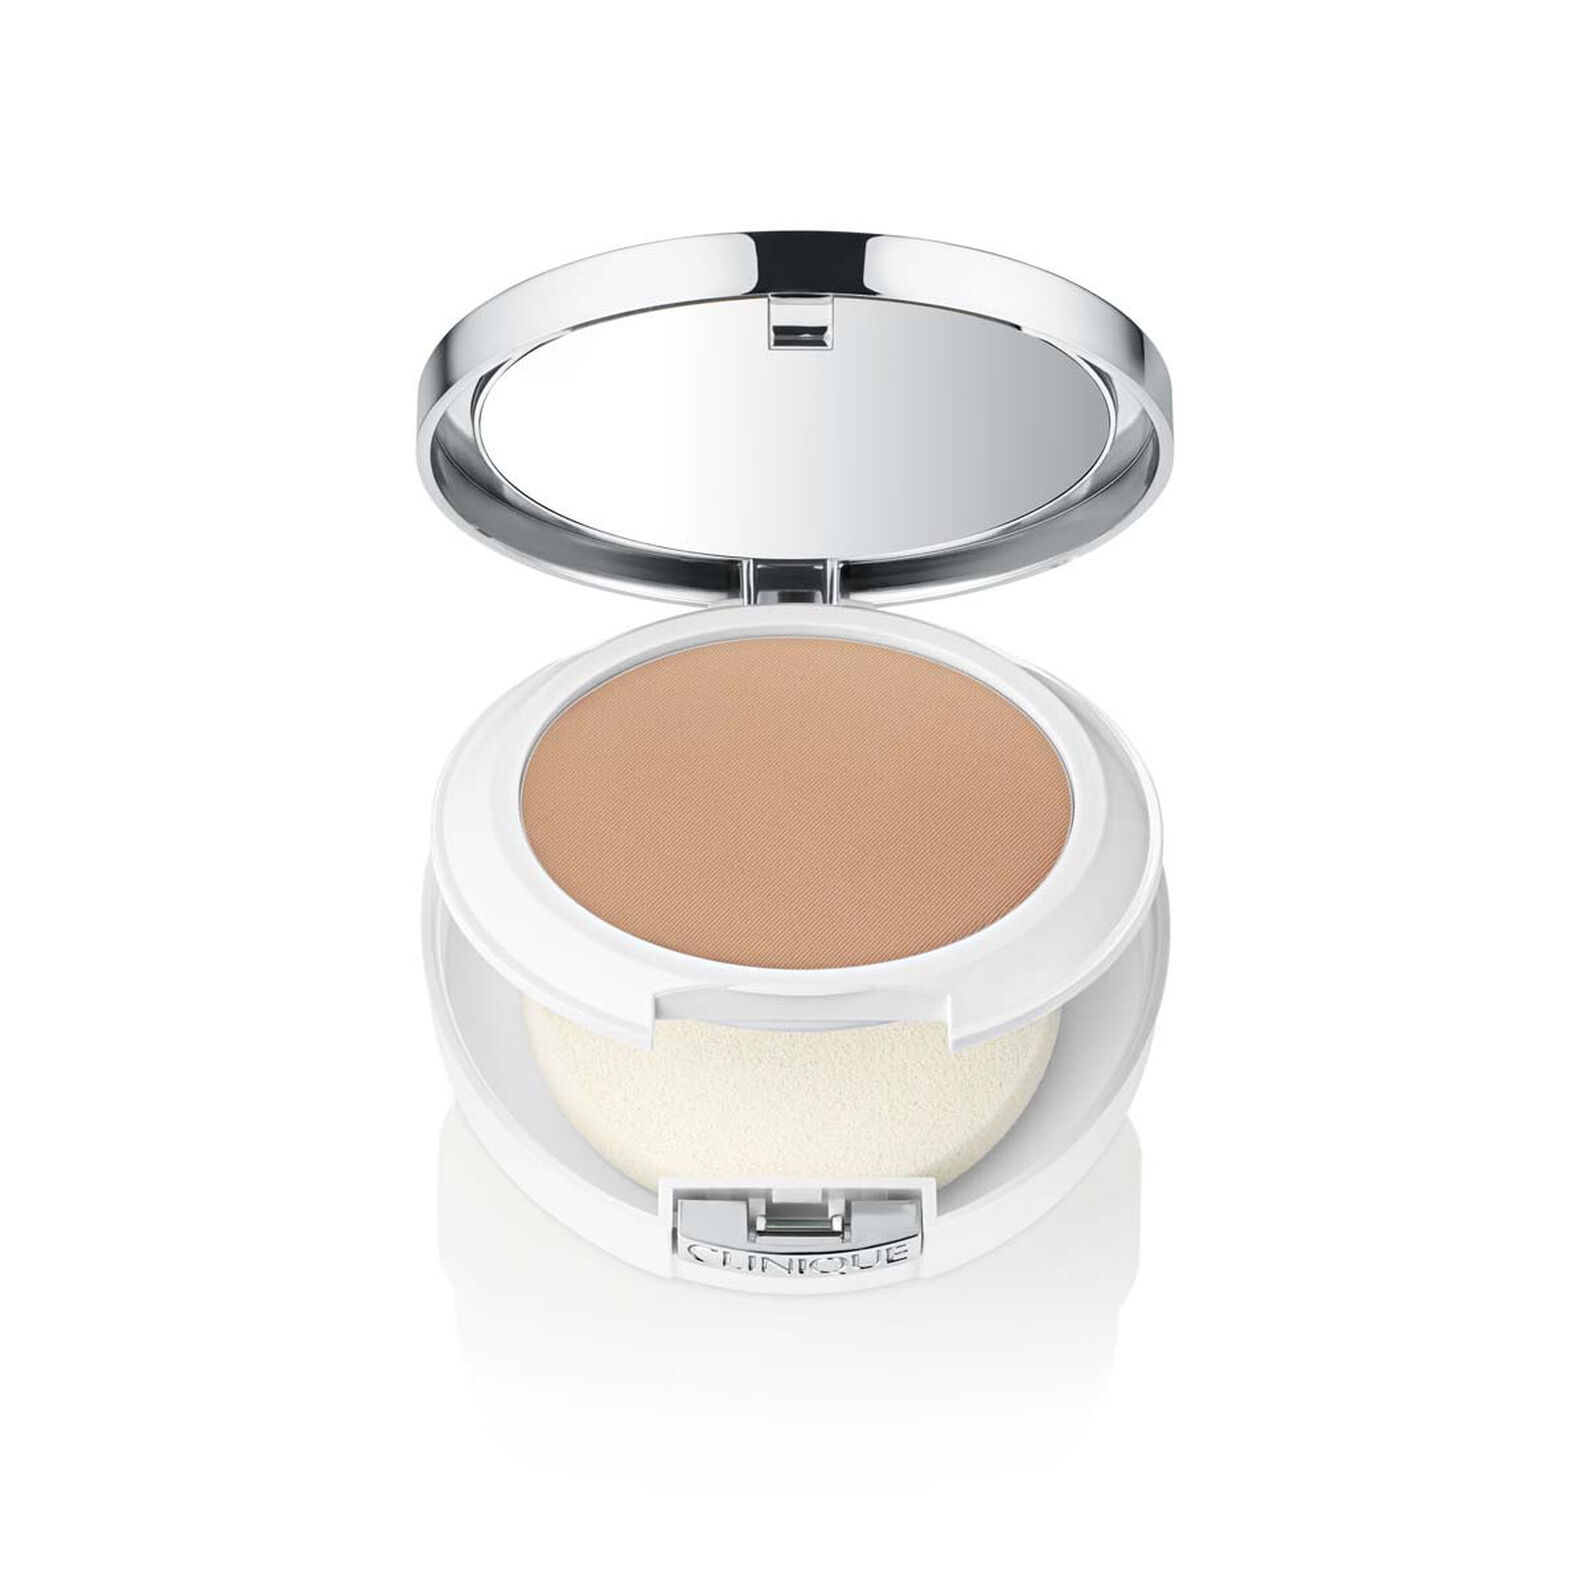 CLINIQUE BEYOND PERFECTING POWDER FOUNDATION - 06 IVORY  14,5 G